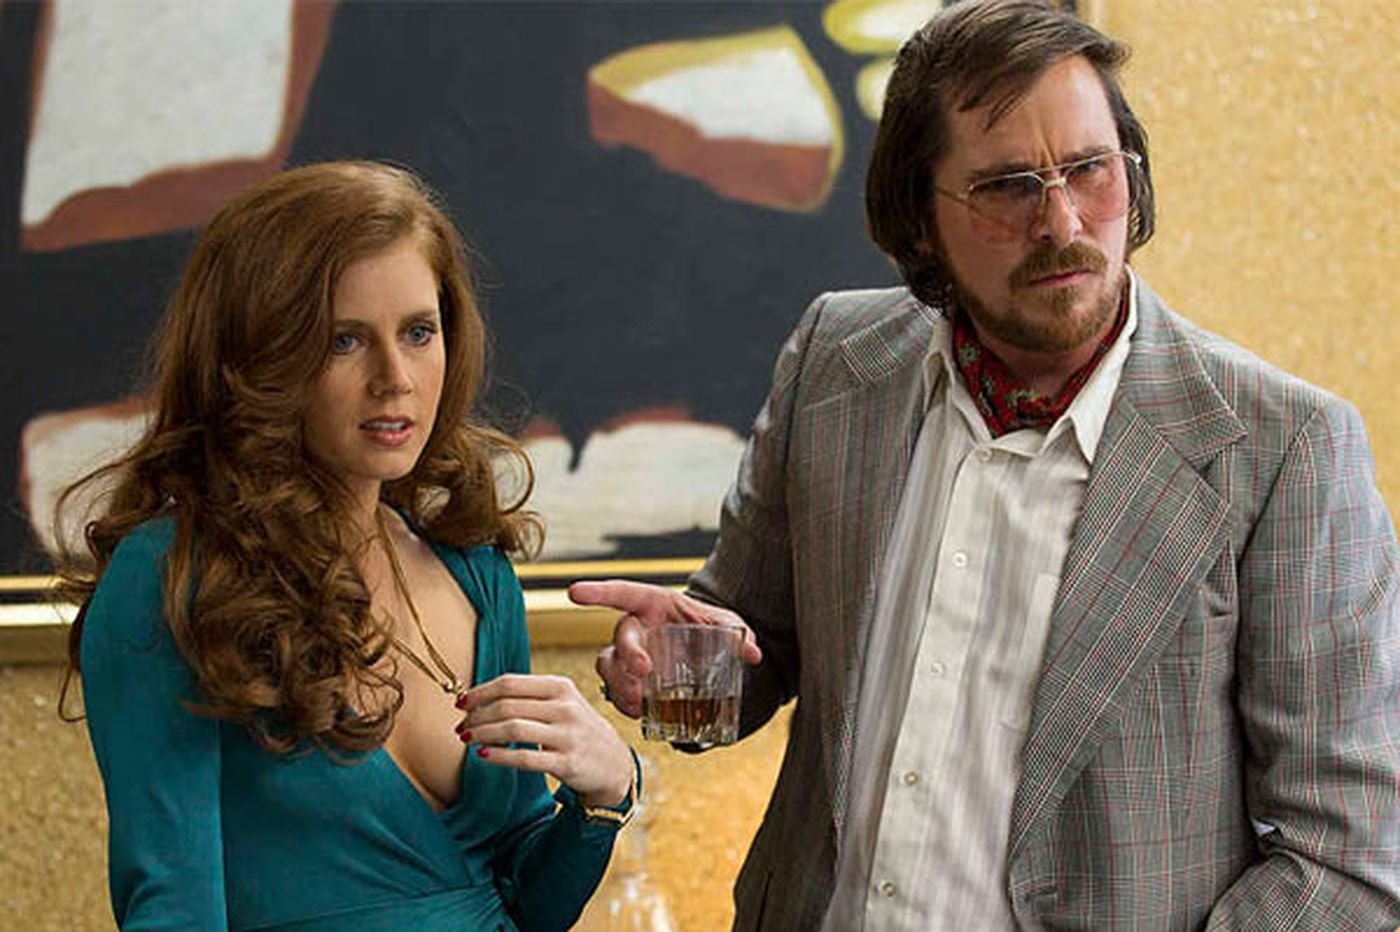 On Movies: Christian Bale on living the part